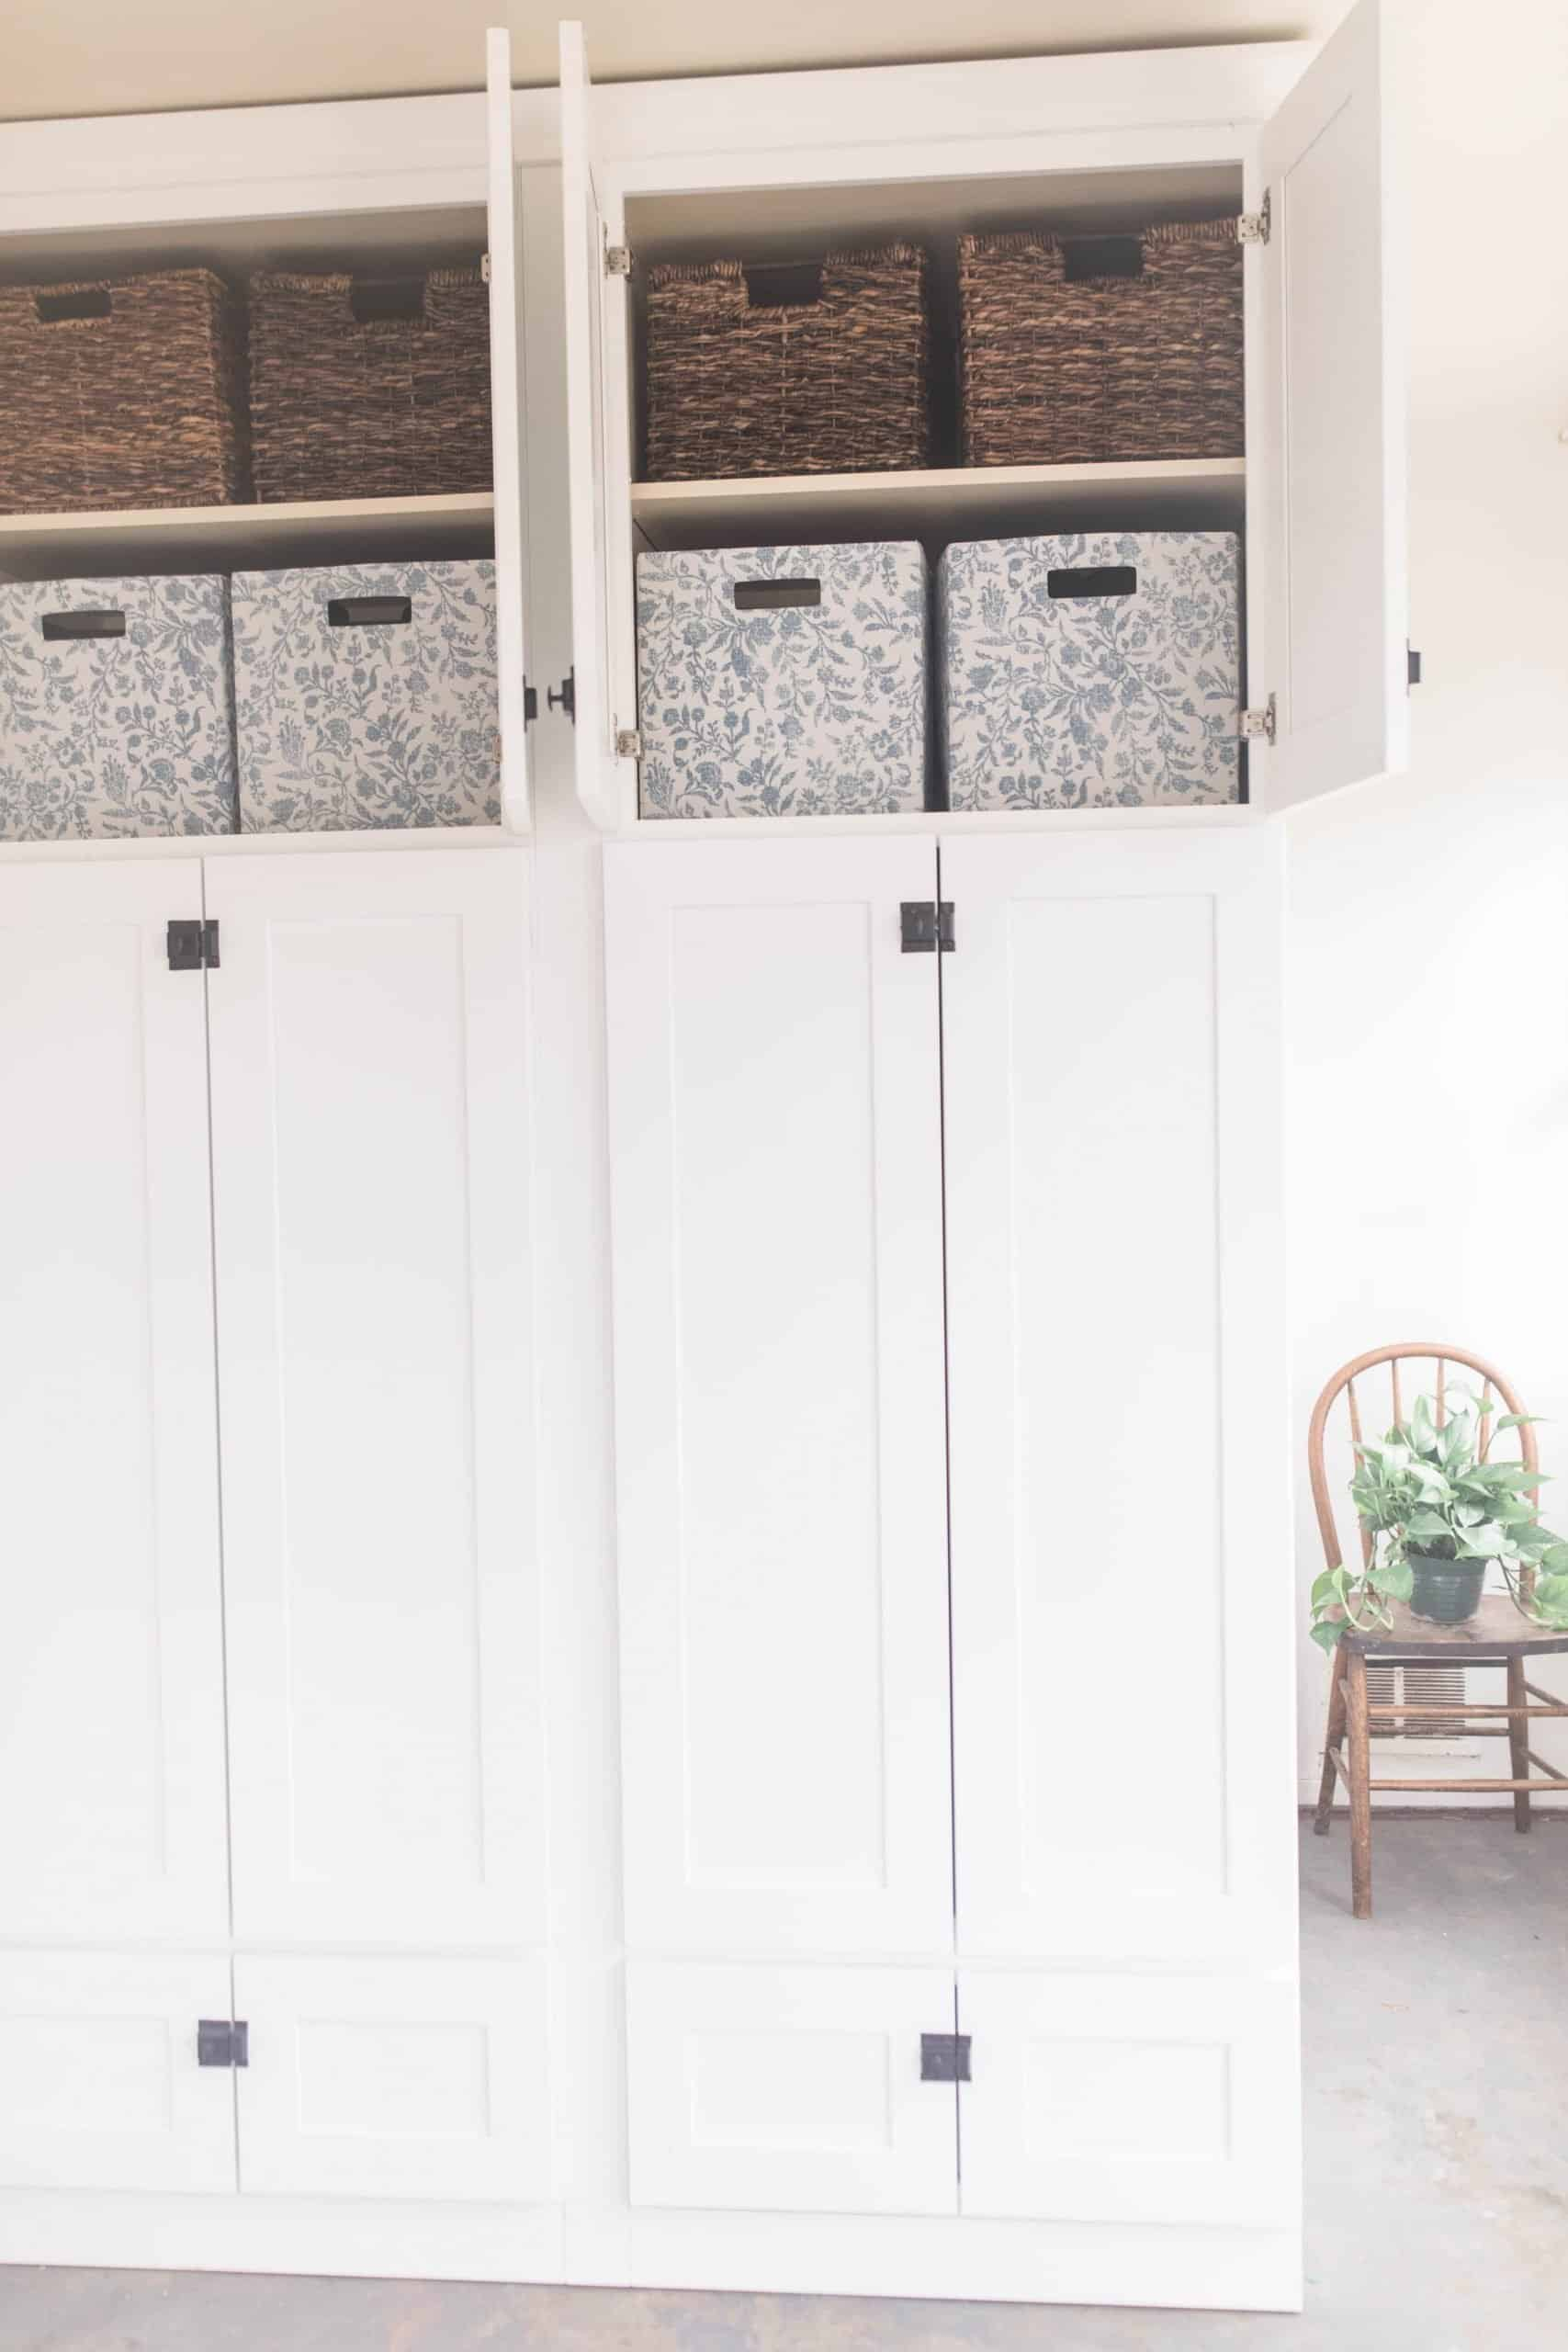 large white cabinet with black latches. Top doors are opening showing can organization